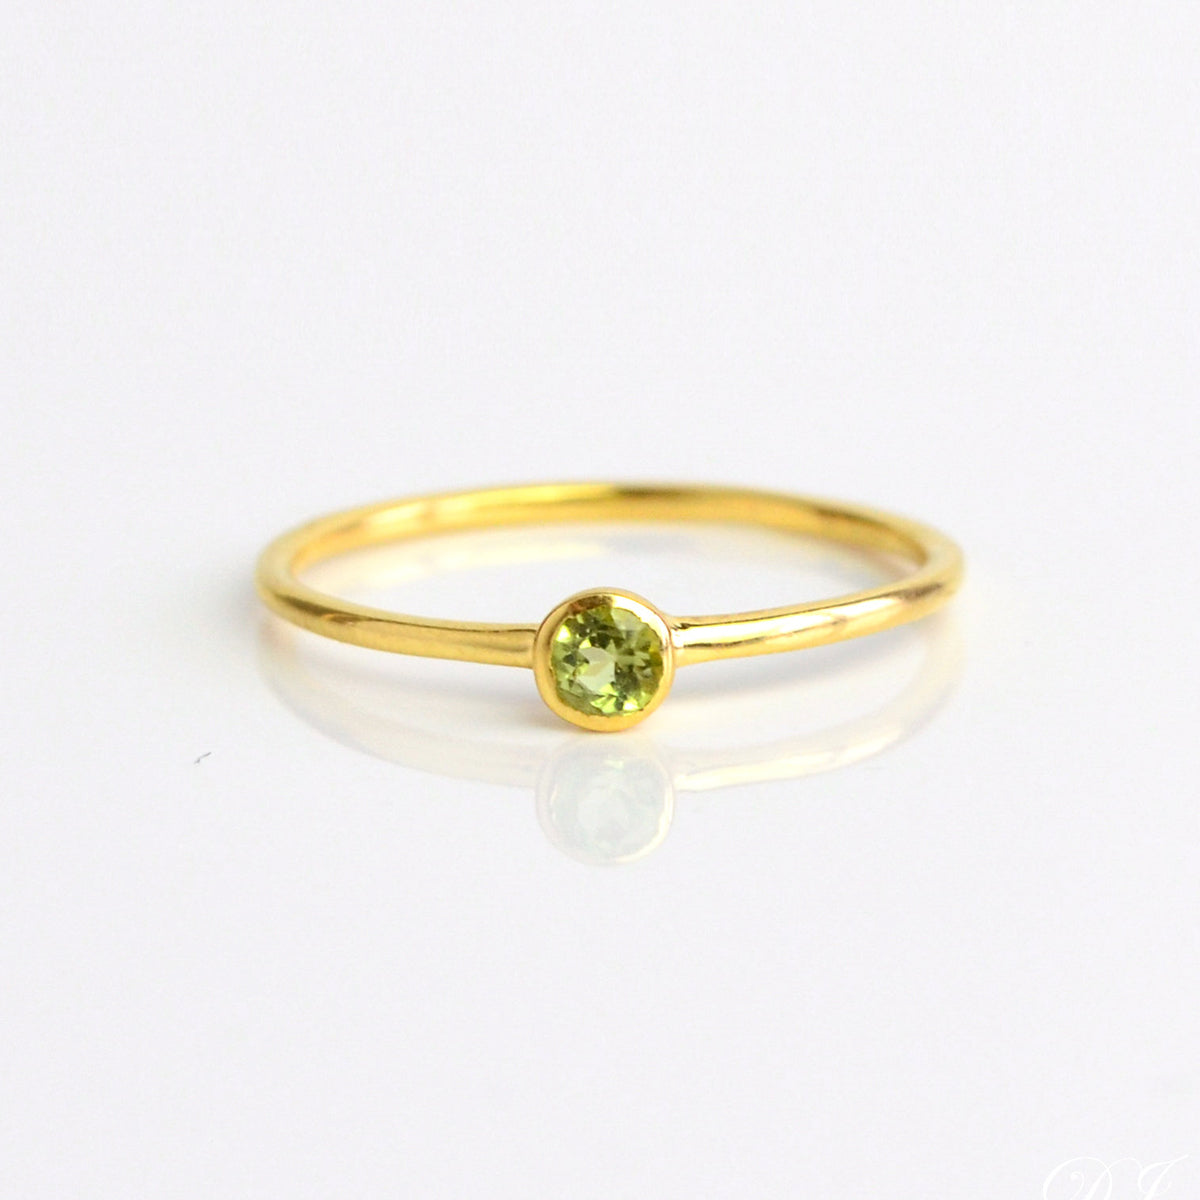 August Birthstone Gold Filled Ring Stacking Ring Dainty Peridot Dainty Ring Mother/'s Ring August Ring Tiny Peridot Ring Peridot Ring